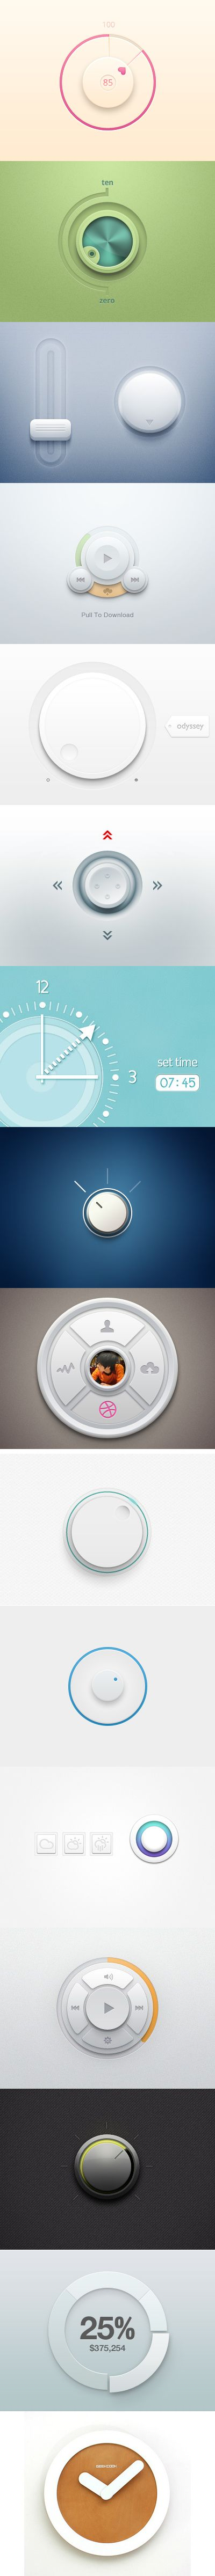 #UI I like knobs and I like digital and these are digital lobs, so i like it 2x as much